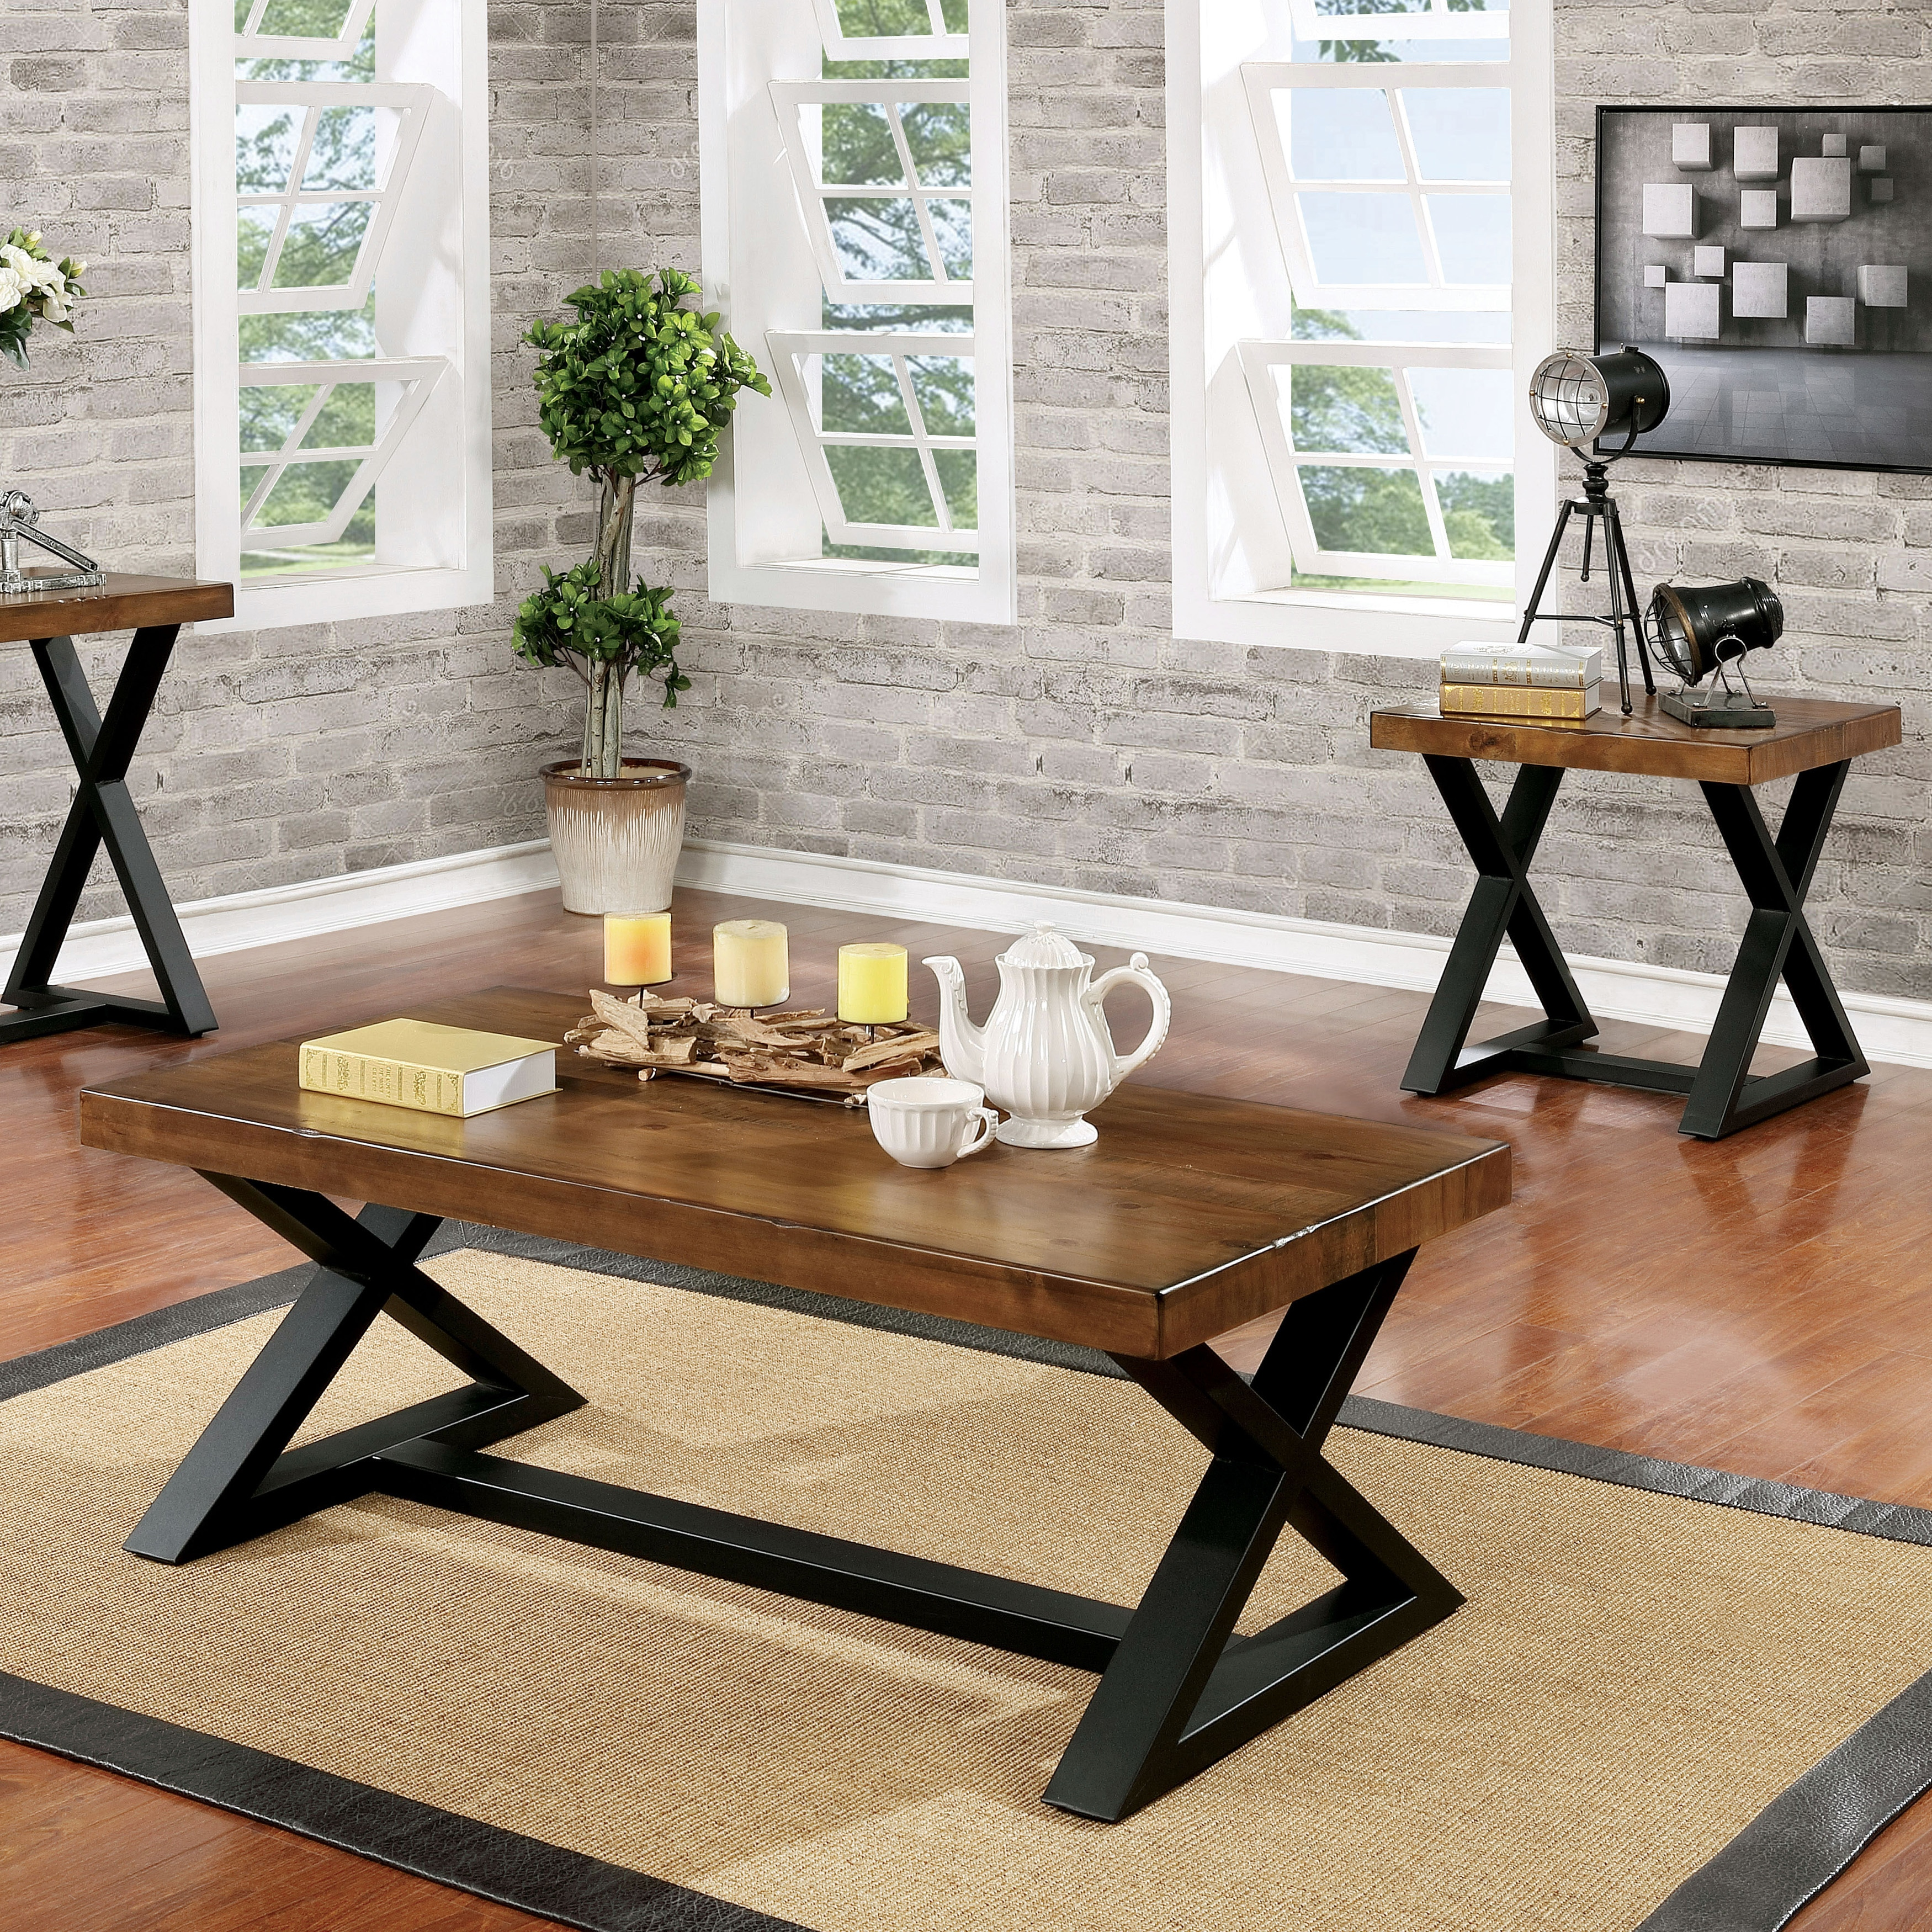 furniture america wildrow rustic two tone brown and black trestle coffee table room essentials accent wood free shipping today outdoor setting cover wrought iron dining living